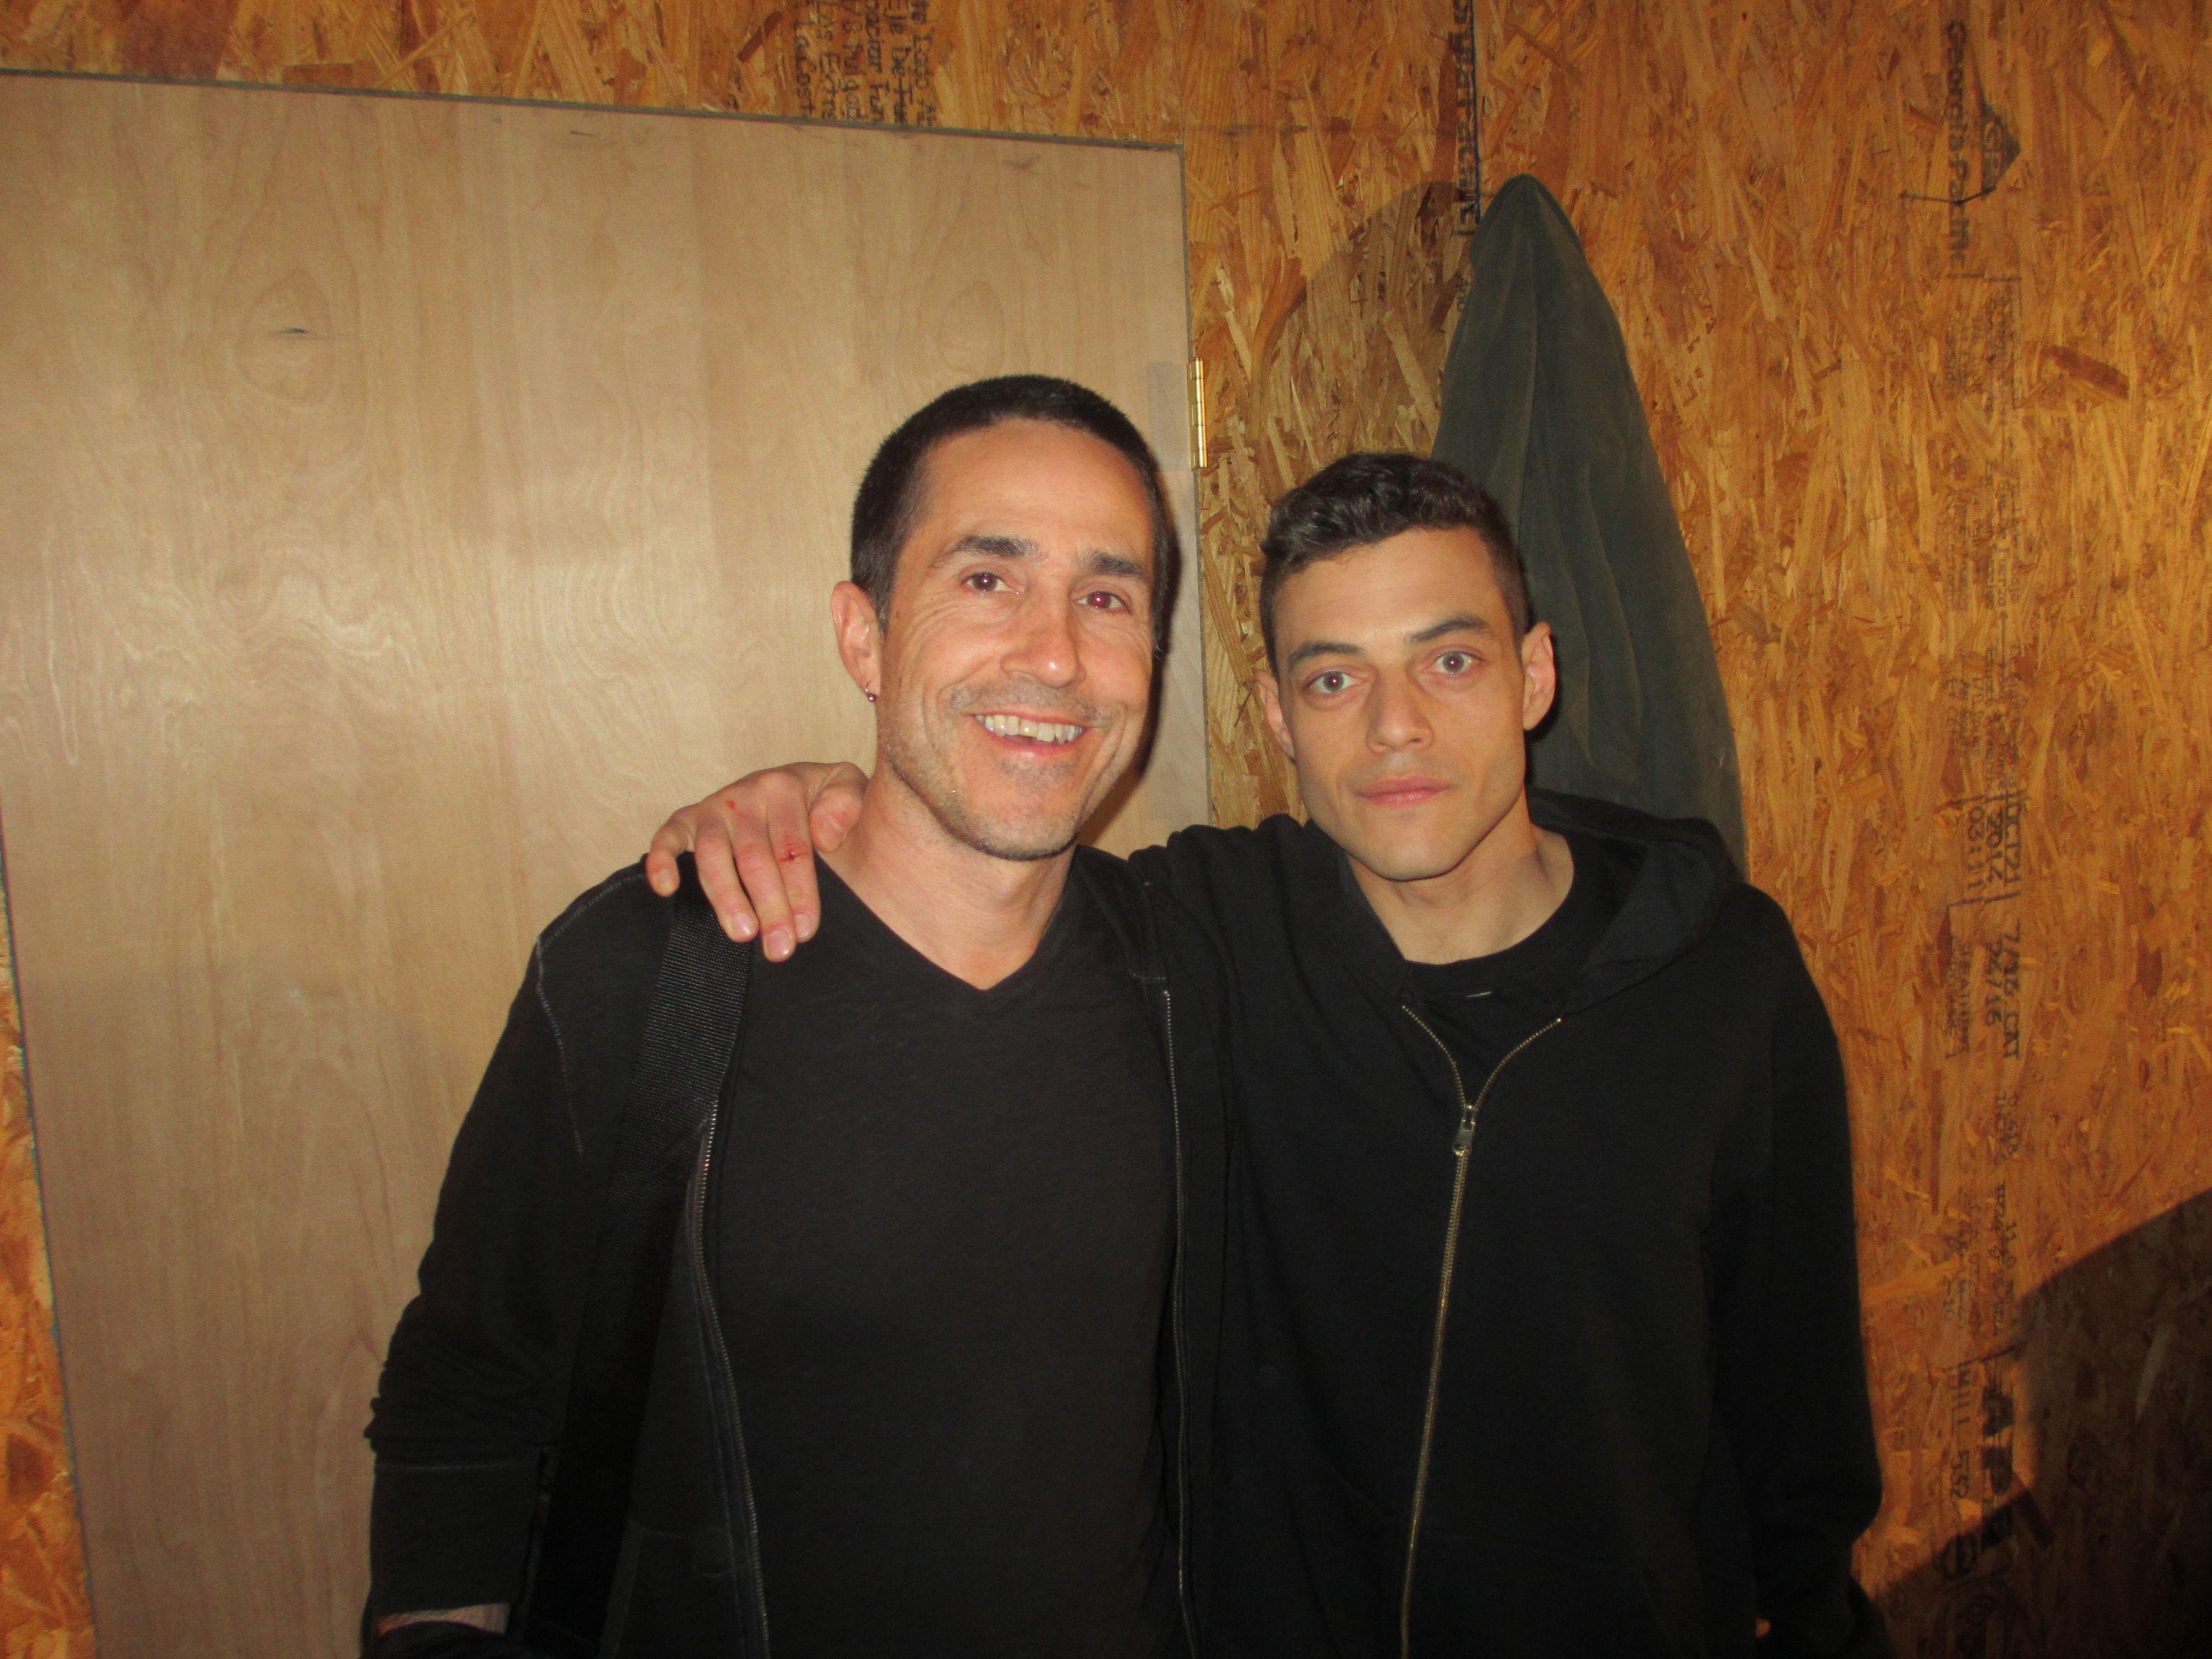 Mac Quayle and Rami Malek on Mr. Robot